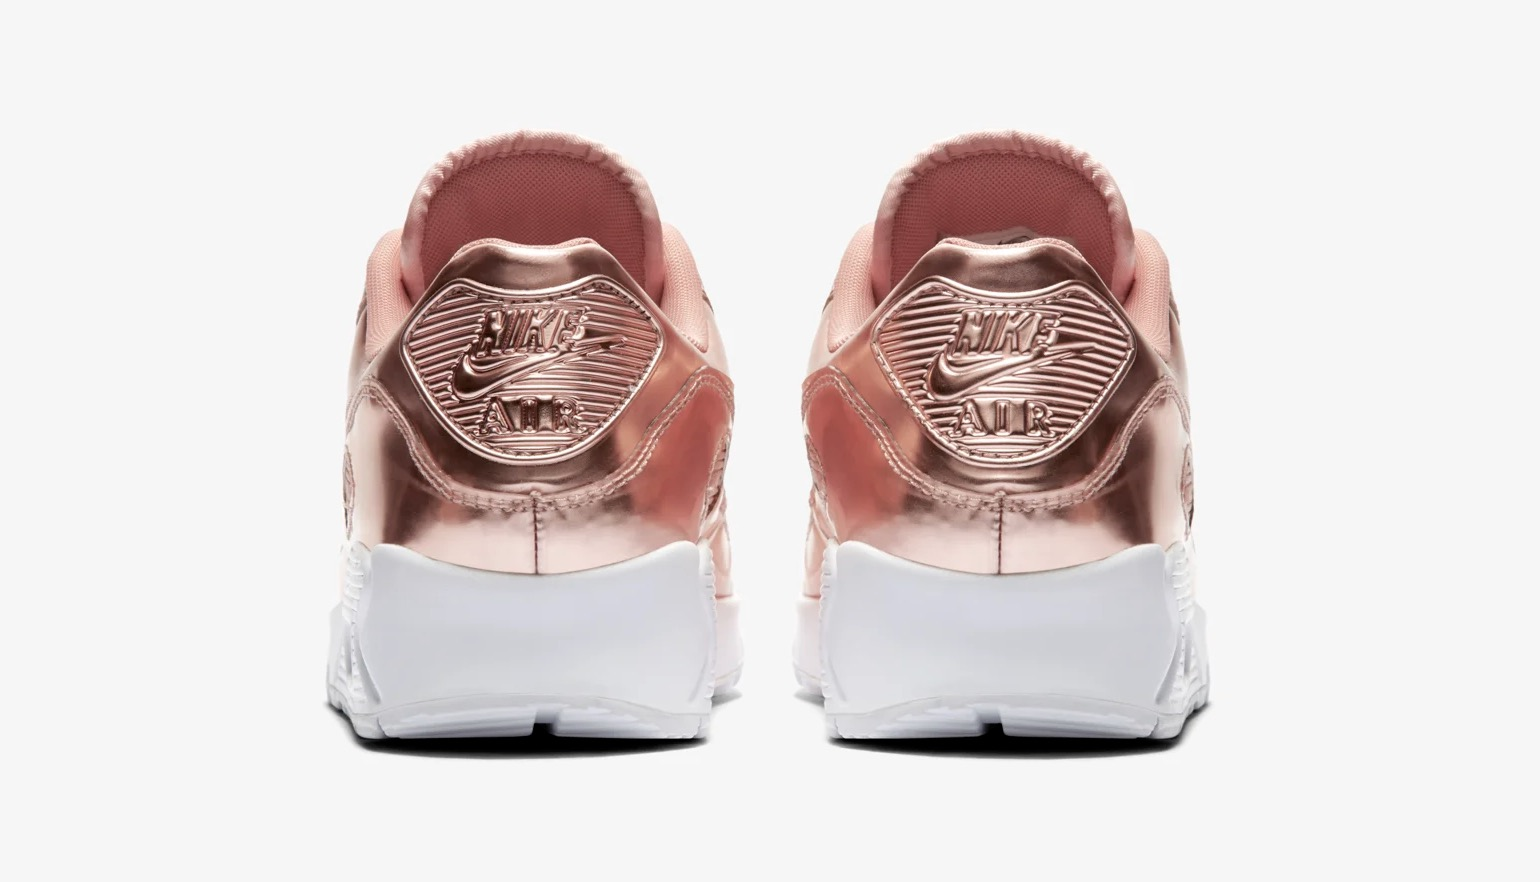 Nike Air Max Rose Gold Liquid Metal 7